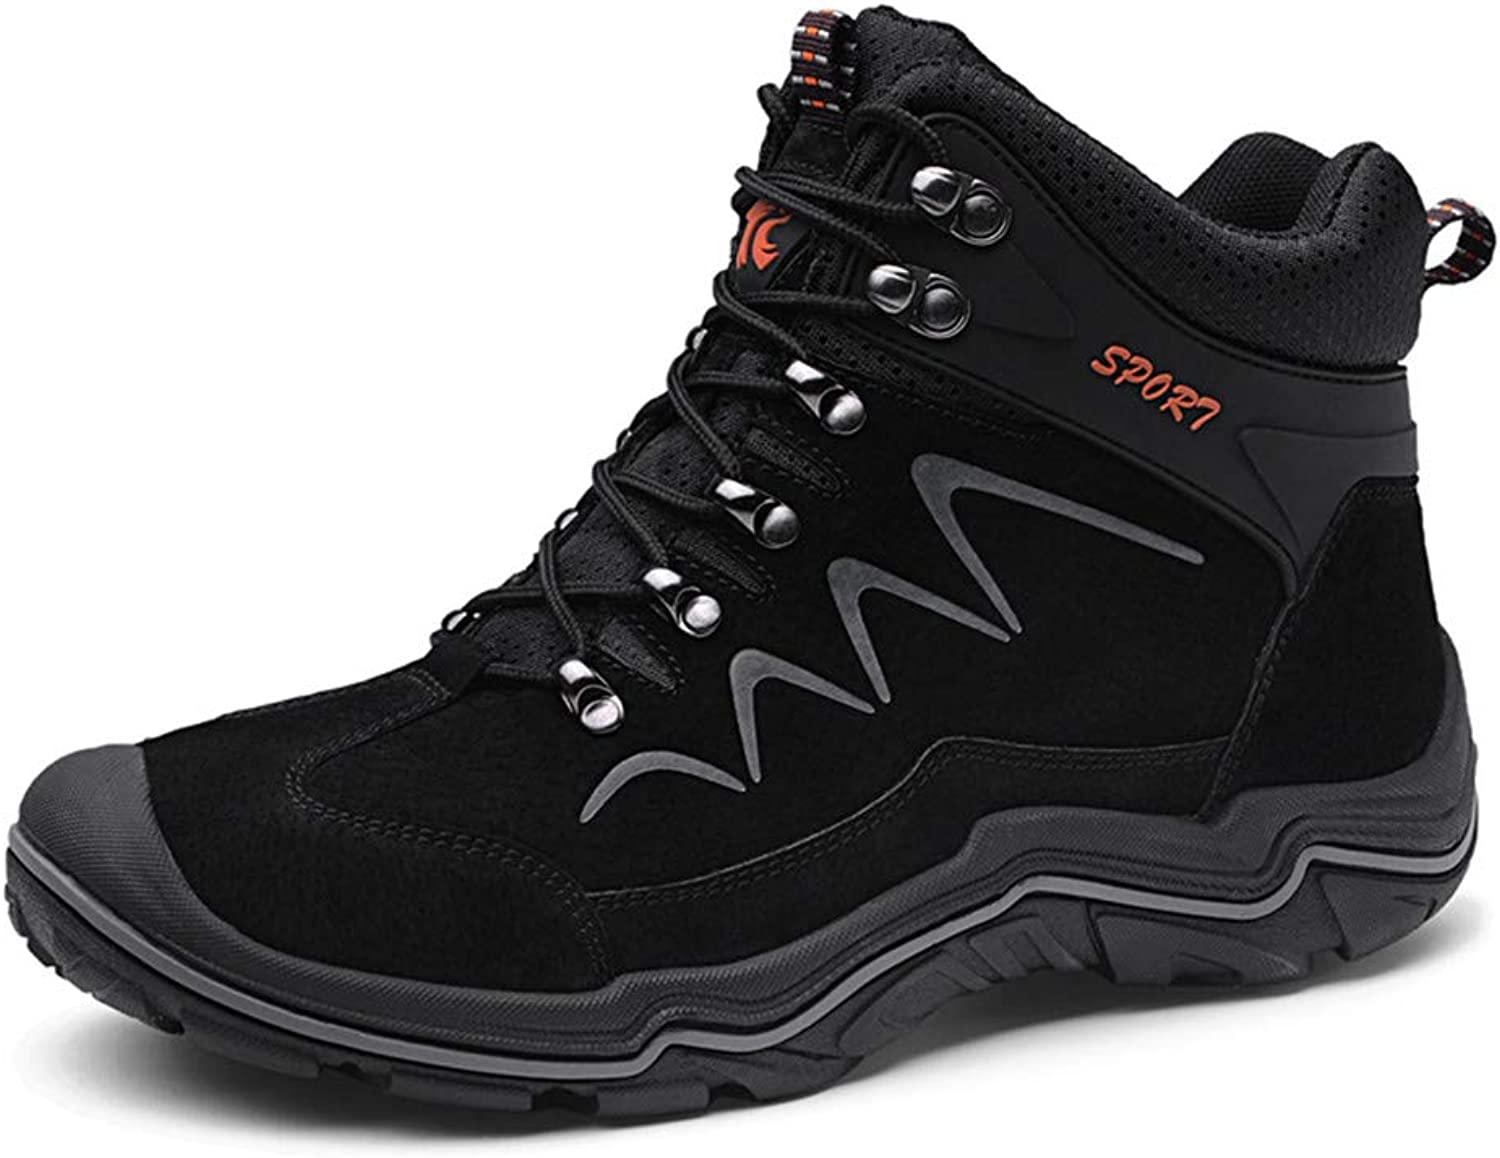 Men's Hiking shoes, Waterproof Walking shoes High Help Breathable Non Slip for Outdoor Sports Trekking Travelling Climbing,Black,38